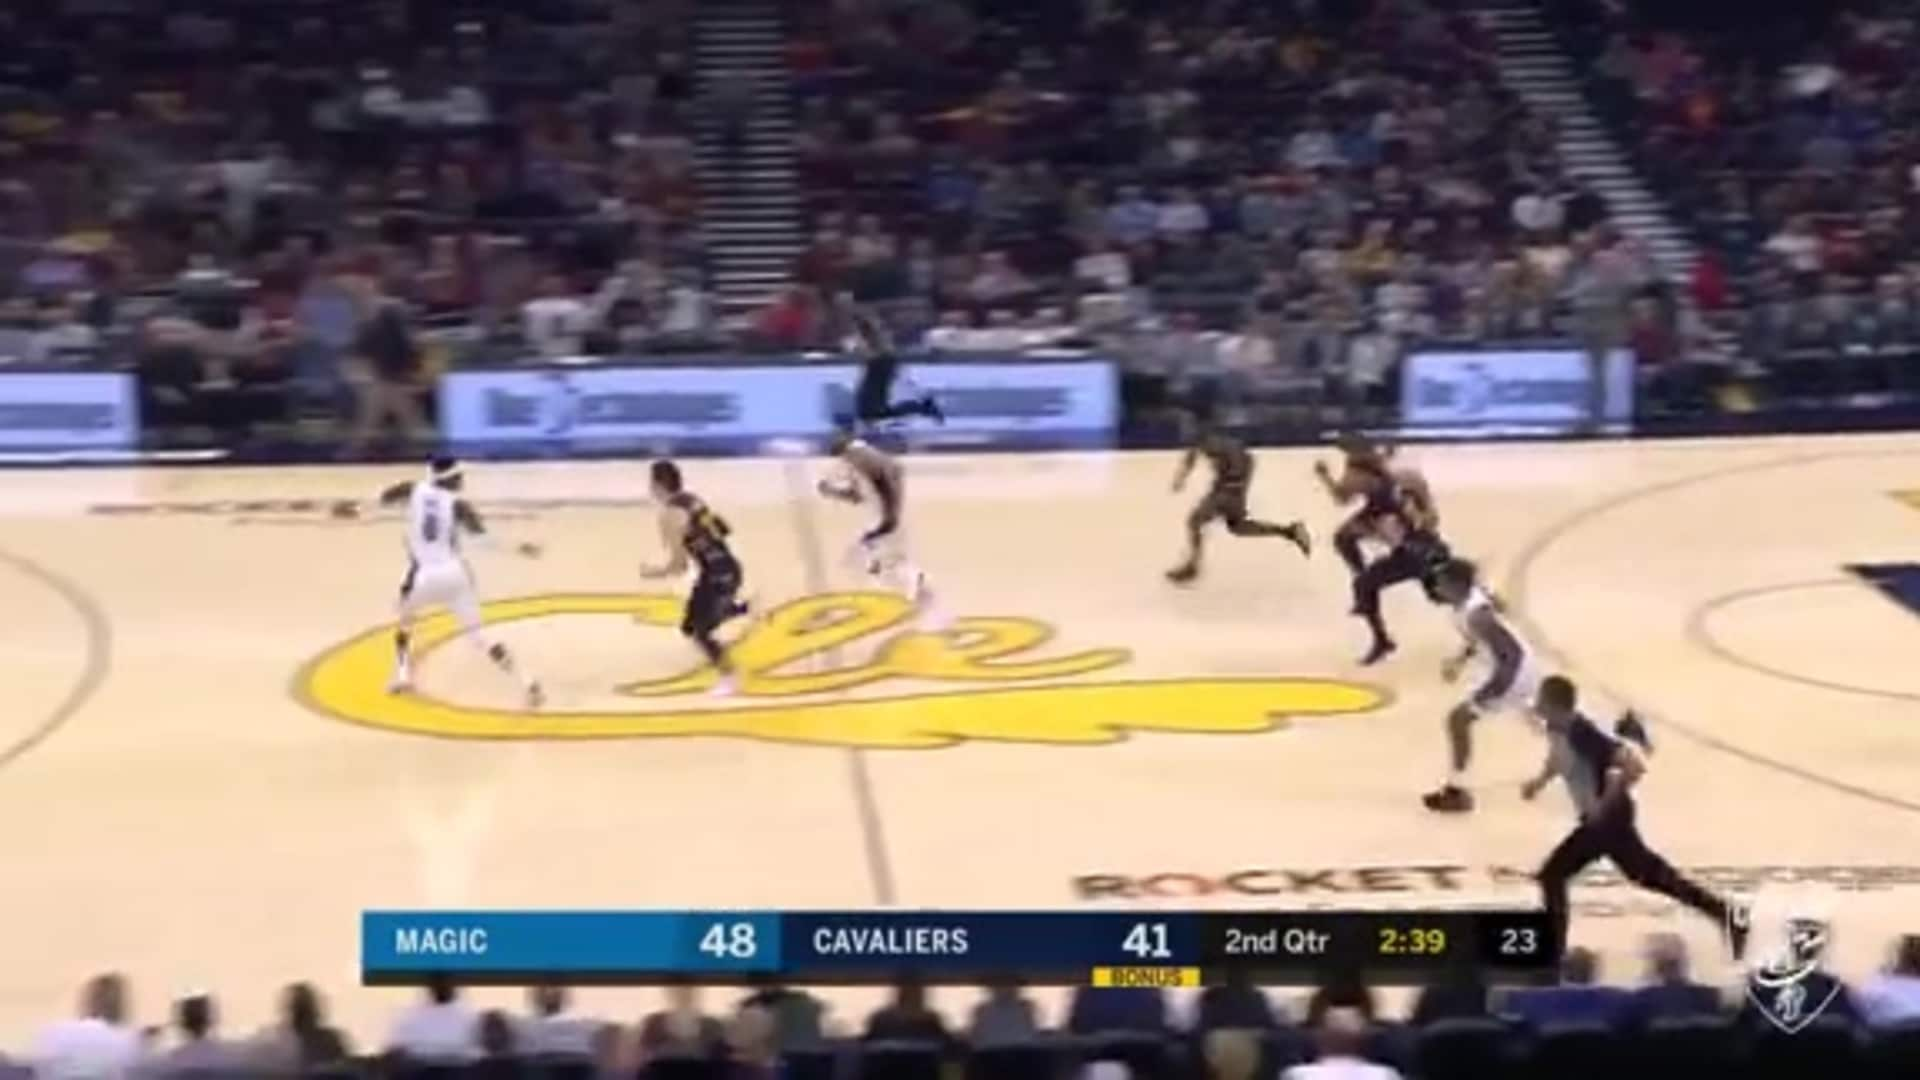 Osman, Sexton Run the Floor in Transition, Collin Finishes Play